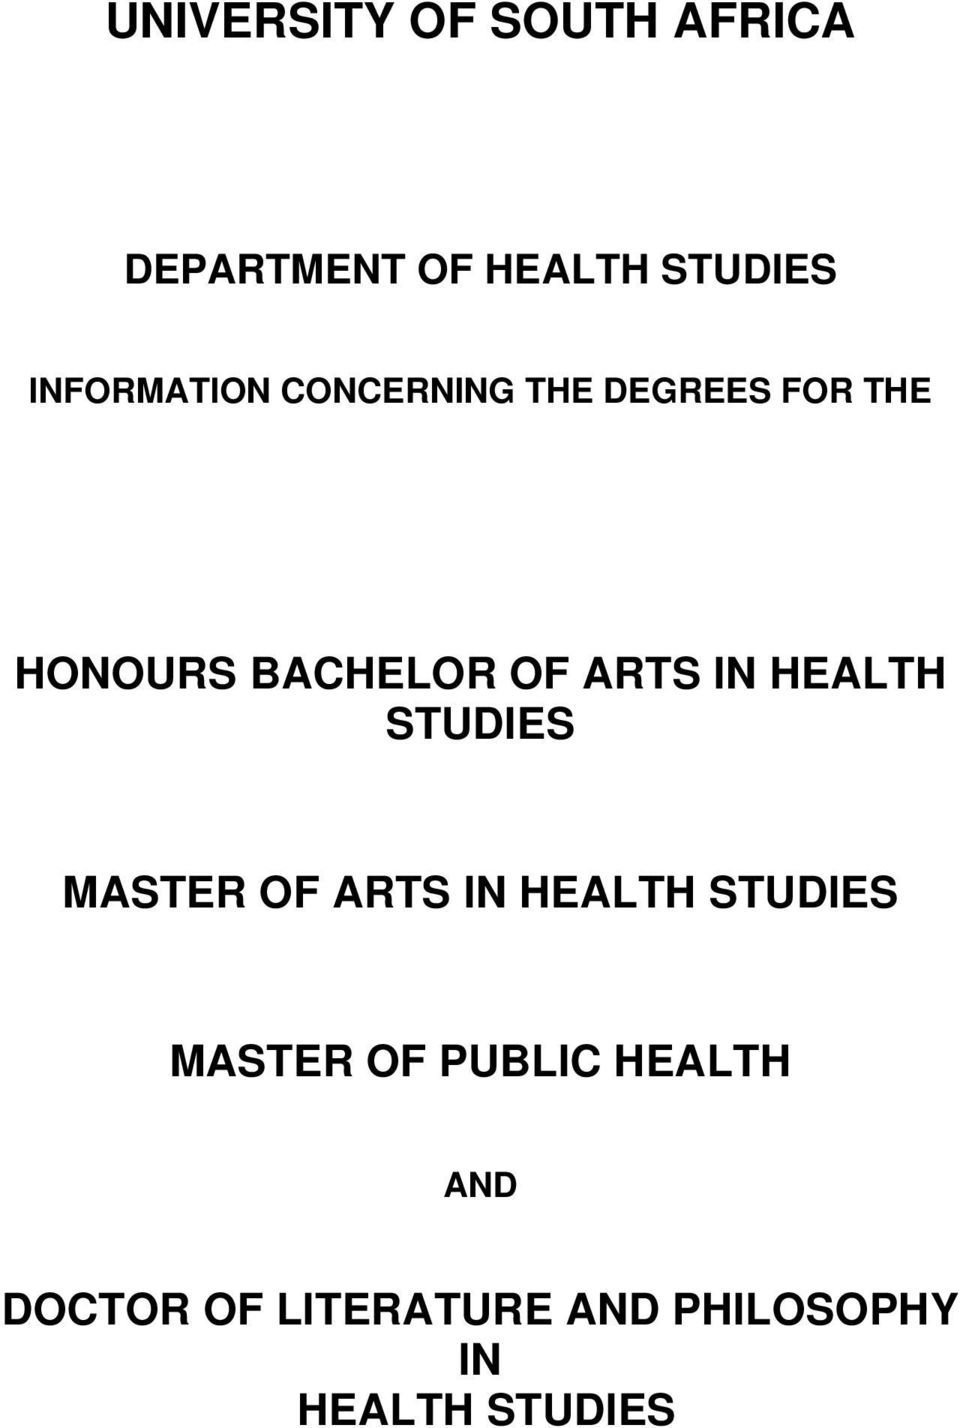 ARTS IN HEALTH STUDIES MASTER OF ARTS IN HEALTH STUDIES MASTER